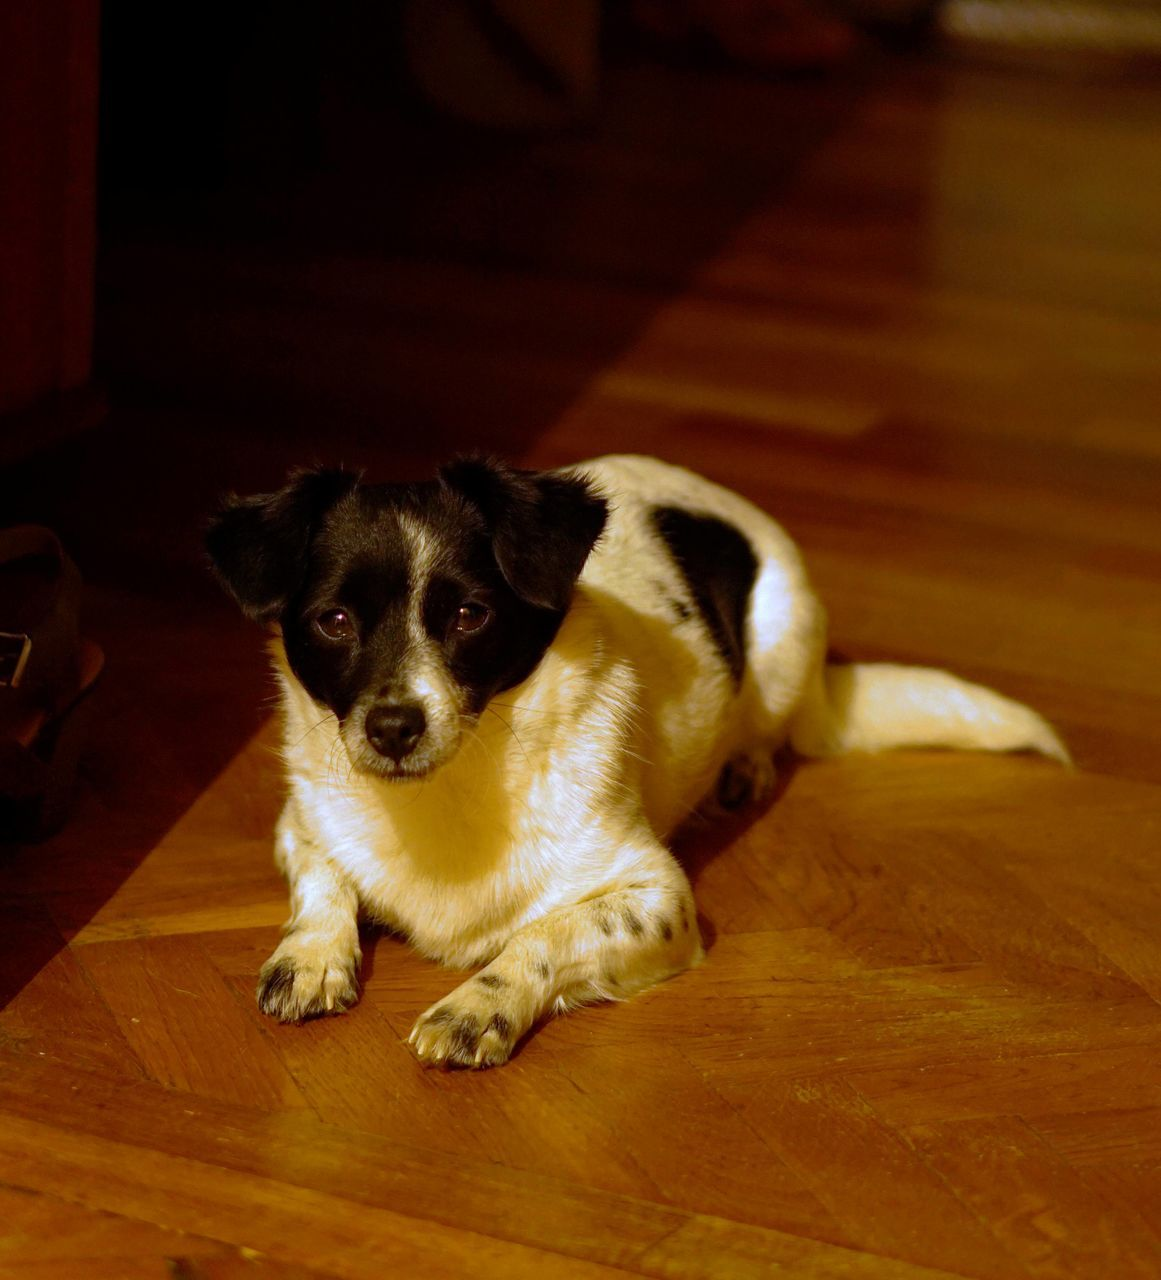 Close-Up Of Dog On Wooden Floor